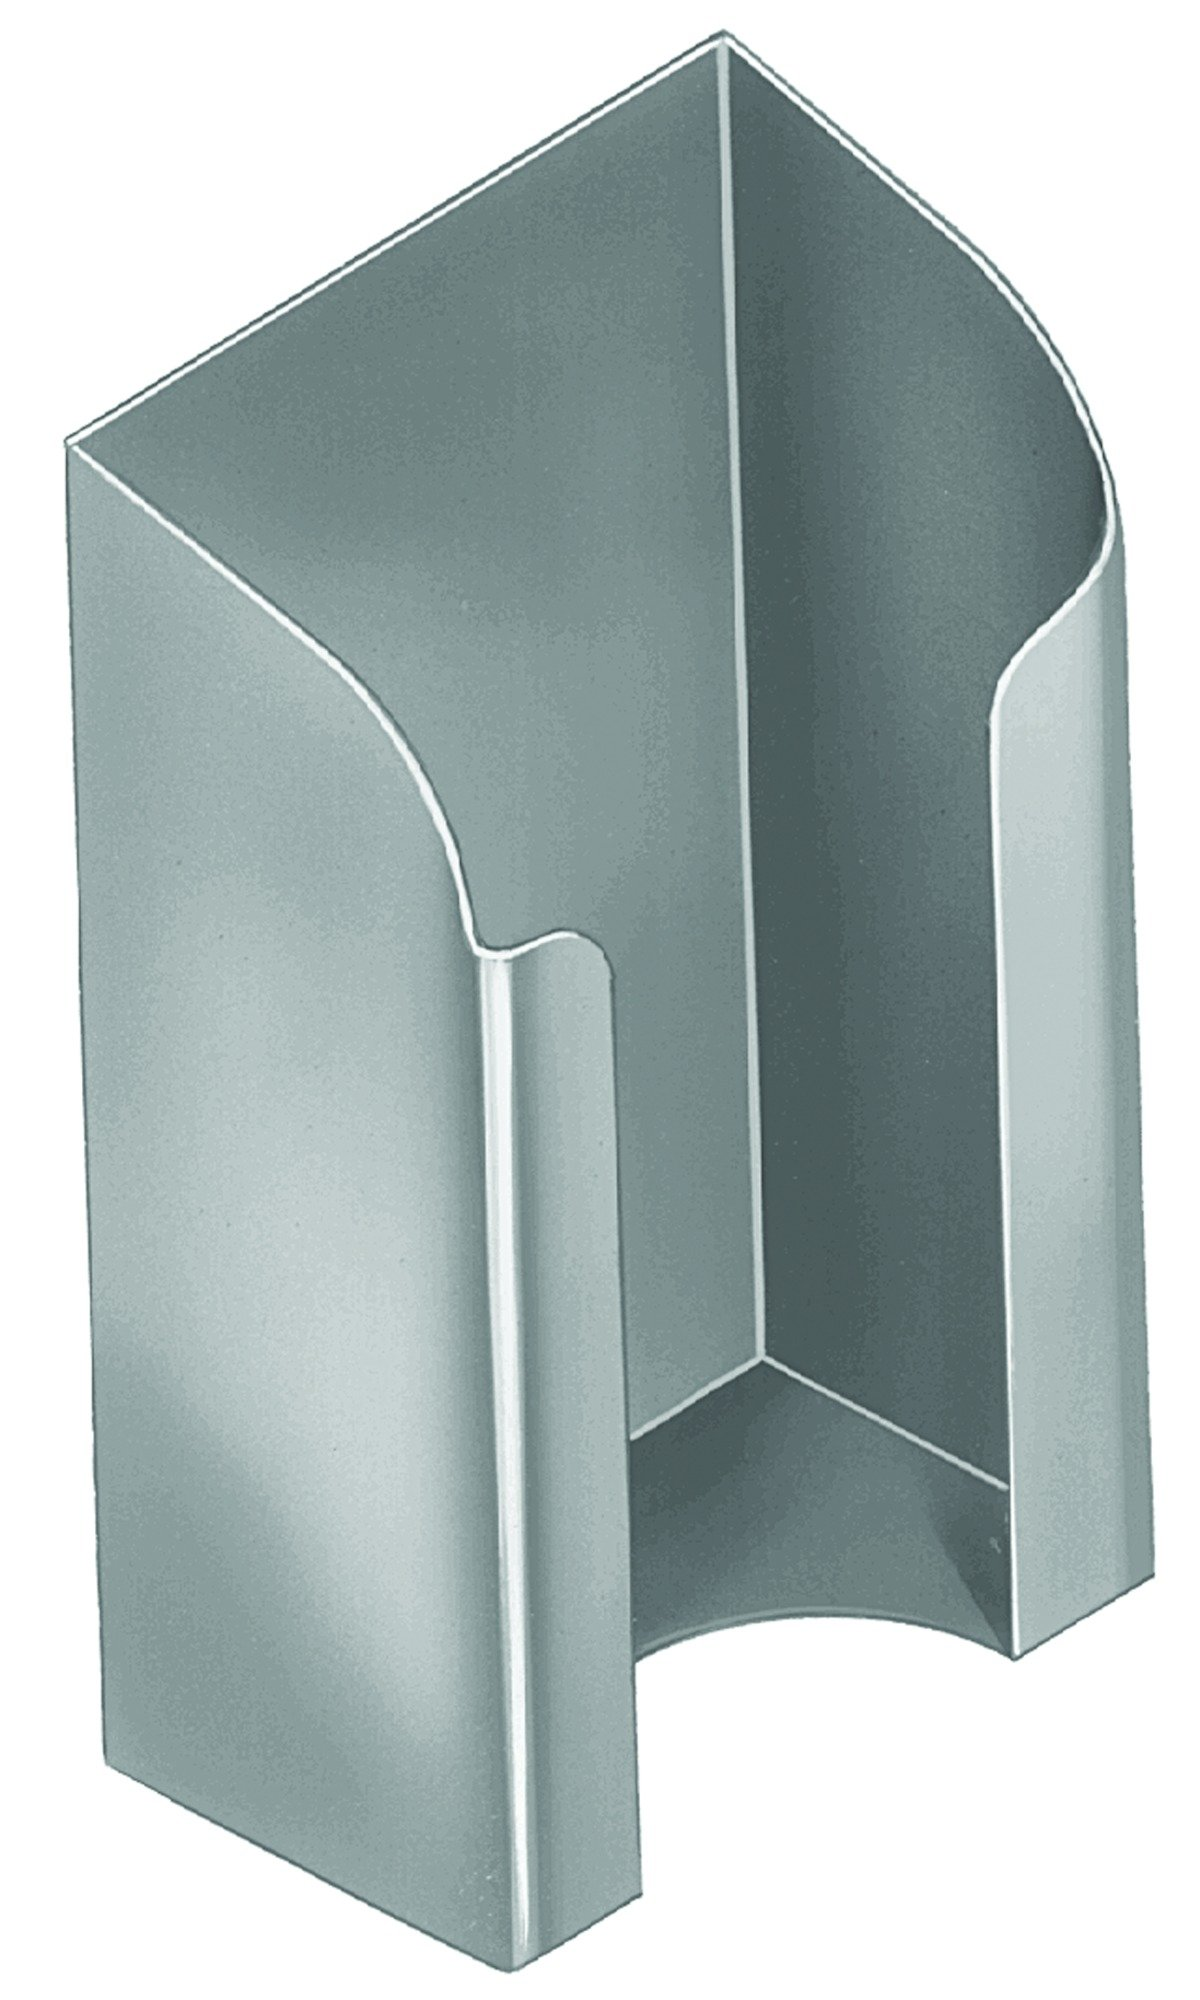 Stainless steel toilet paper holder SA13 | Accurate Door & Hardware, Inc.